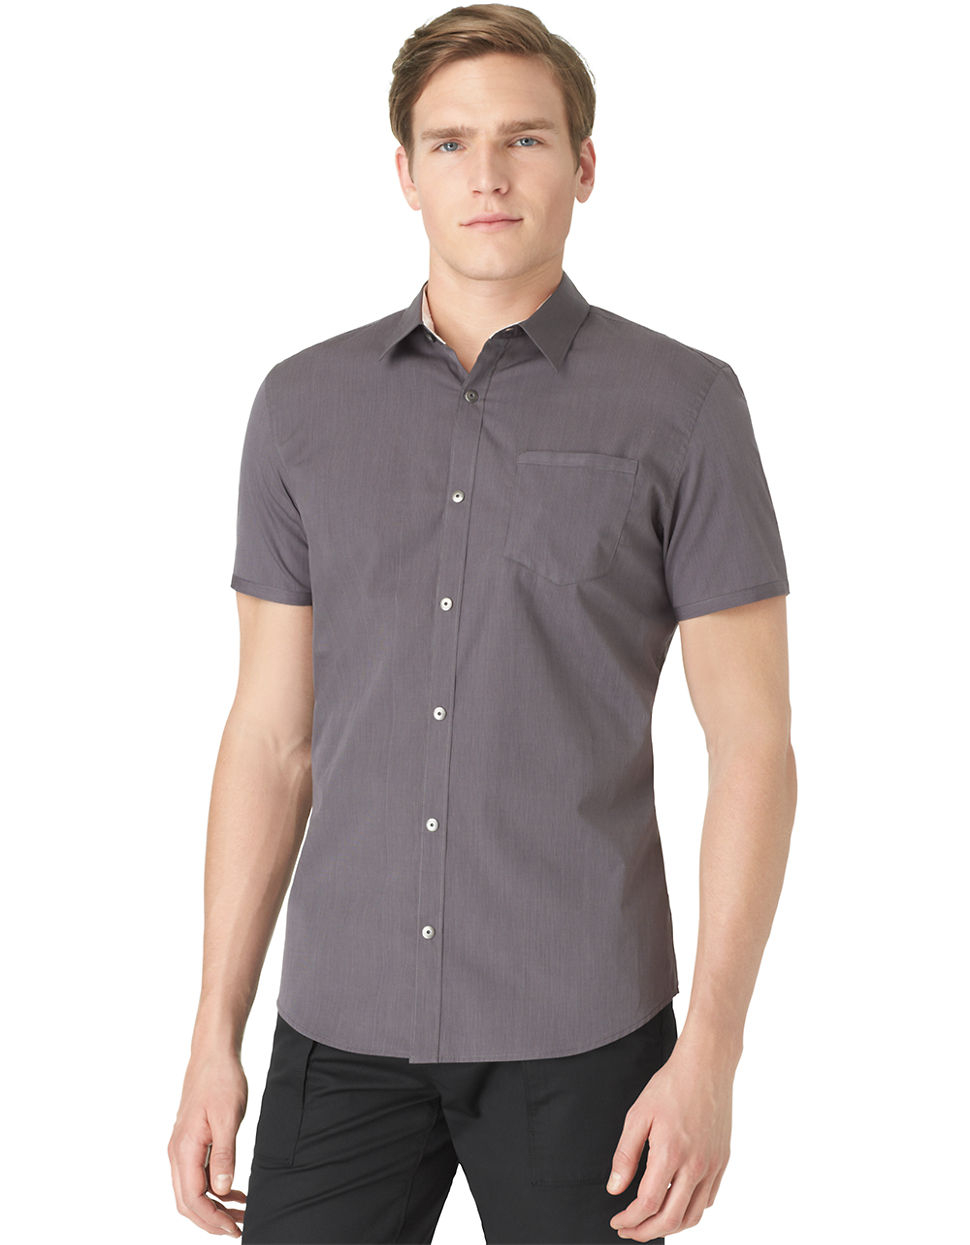 calvin klein slim fit poplin fine stripe sportshirt in gray for men. Black Bedroom Furniture Sets. Home Design Ideas